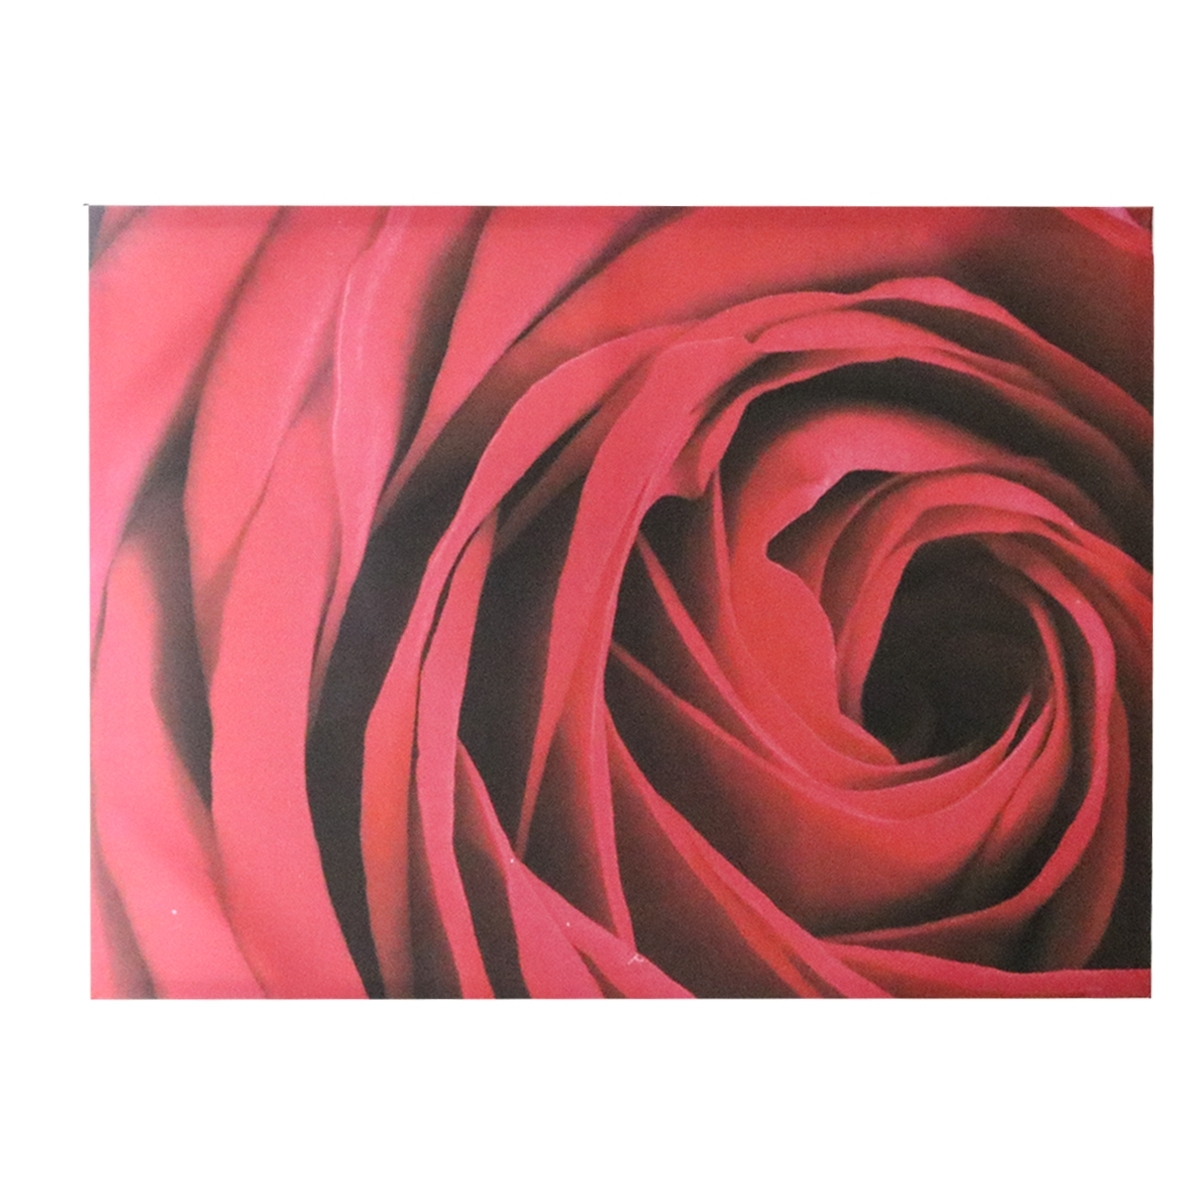 Red Rose Canvas Wall Art | Harry Corry Limited Throughout Most Recent Roses Canvas Wall Art (View 11 of 15)